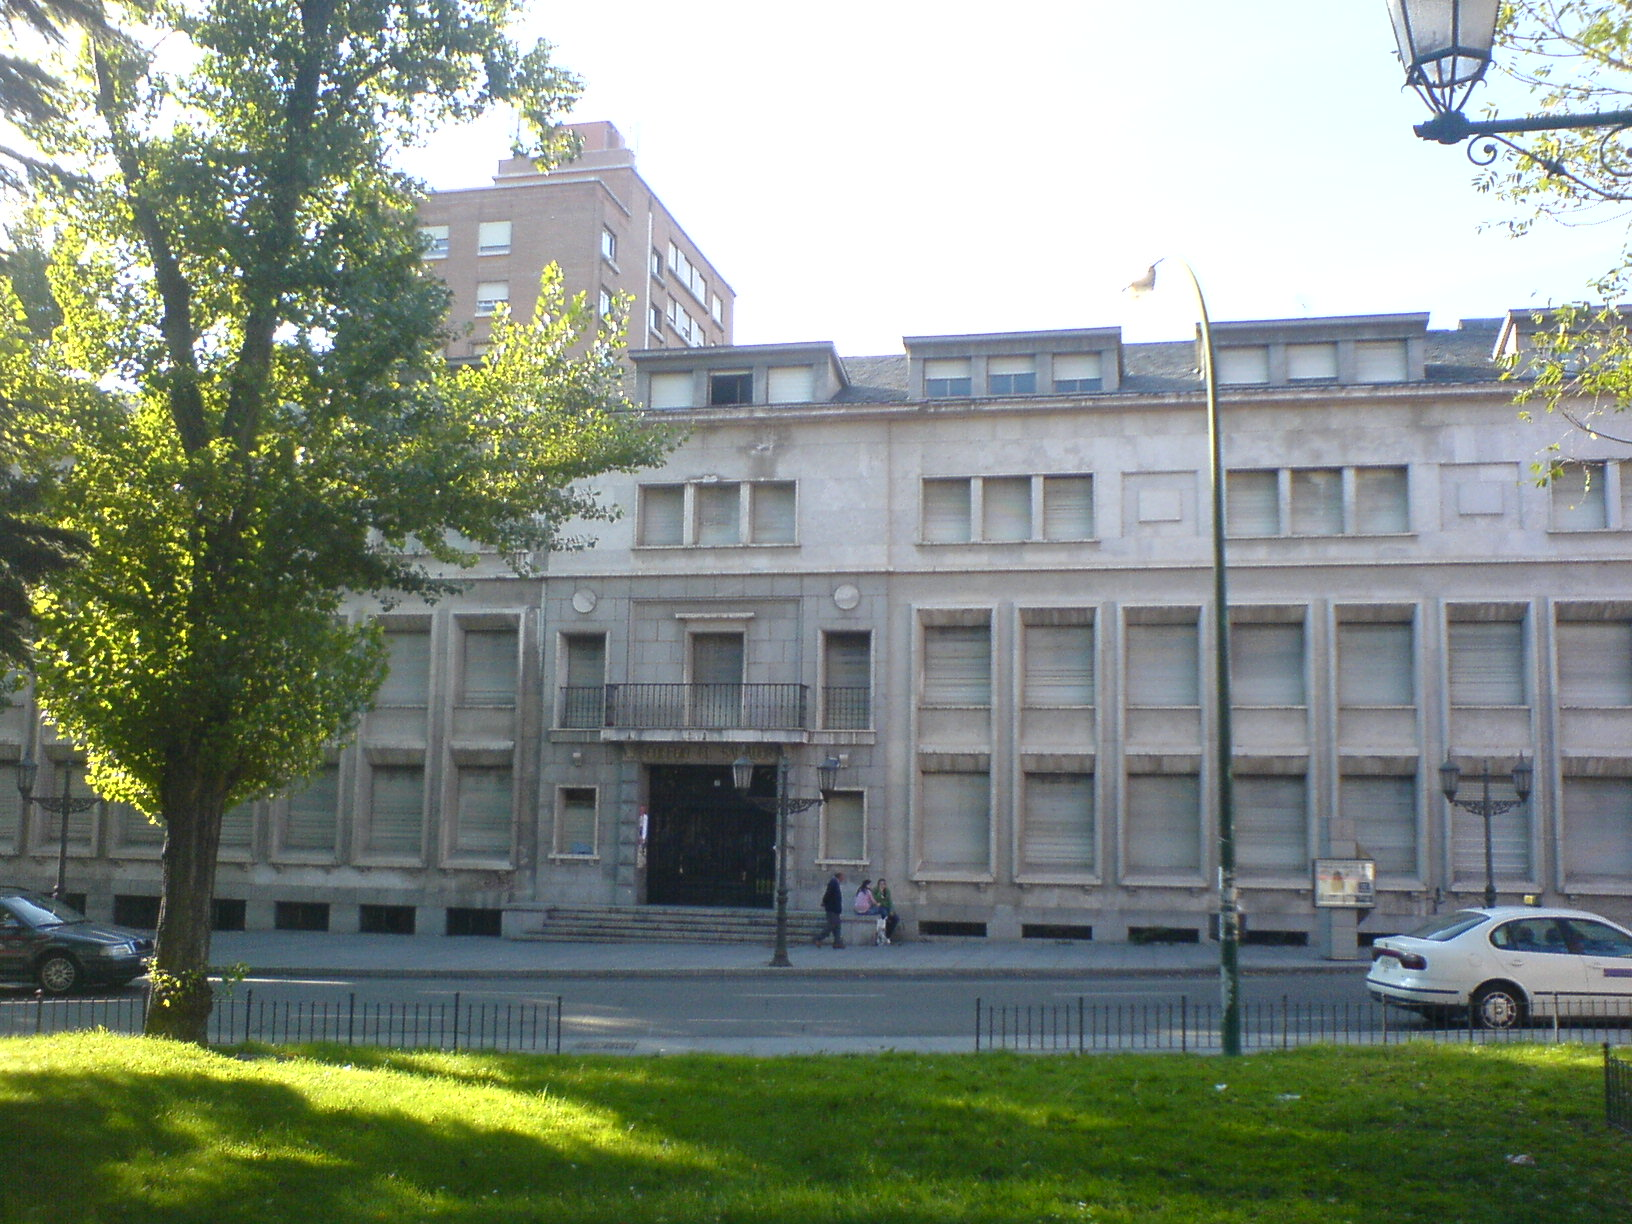 http://upload.wikimedia.org/wikipedia/commons/a/a5/Colegio_El_Salvador_(Valladolid).JPG